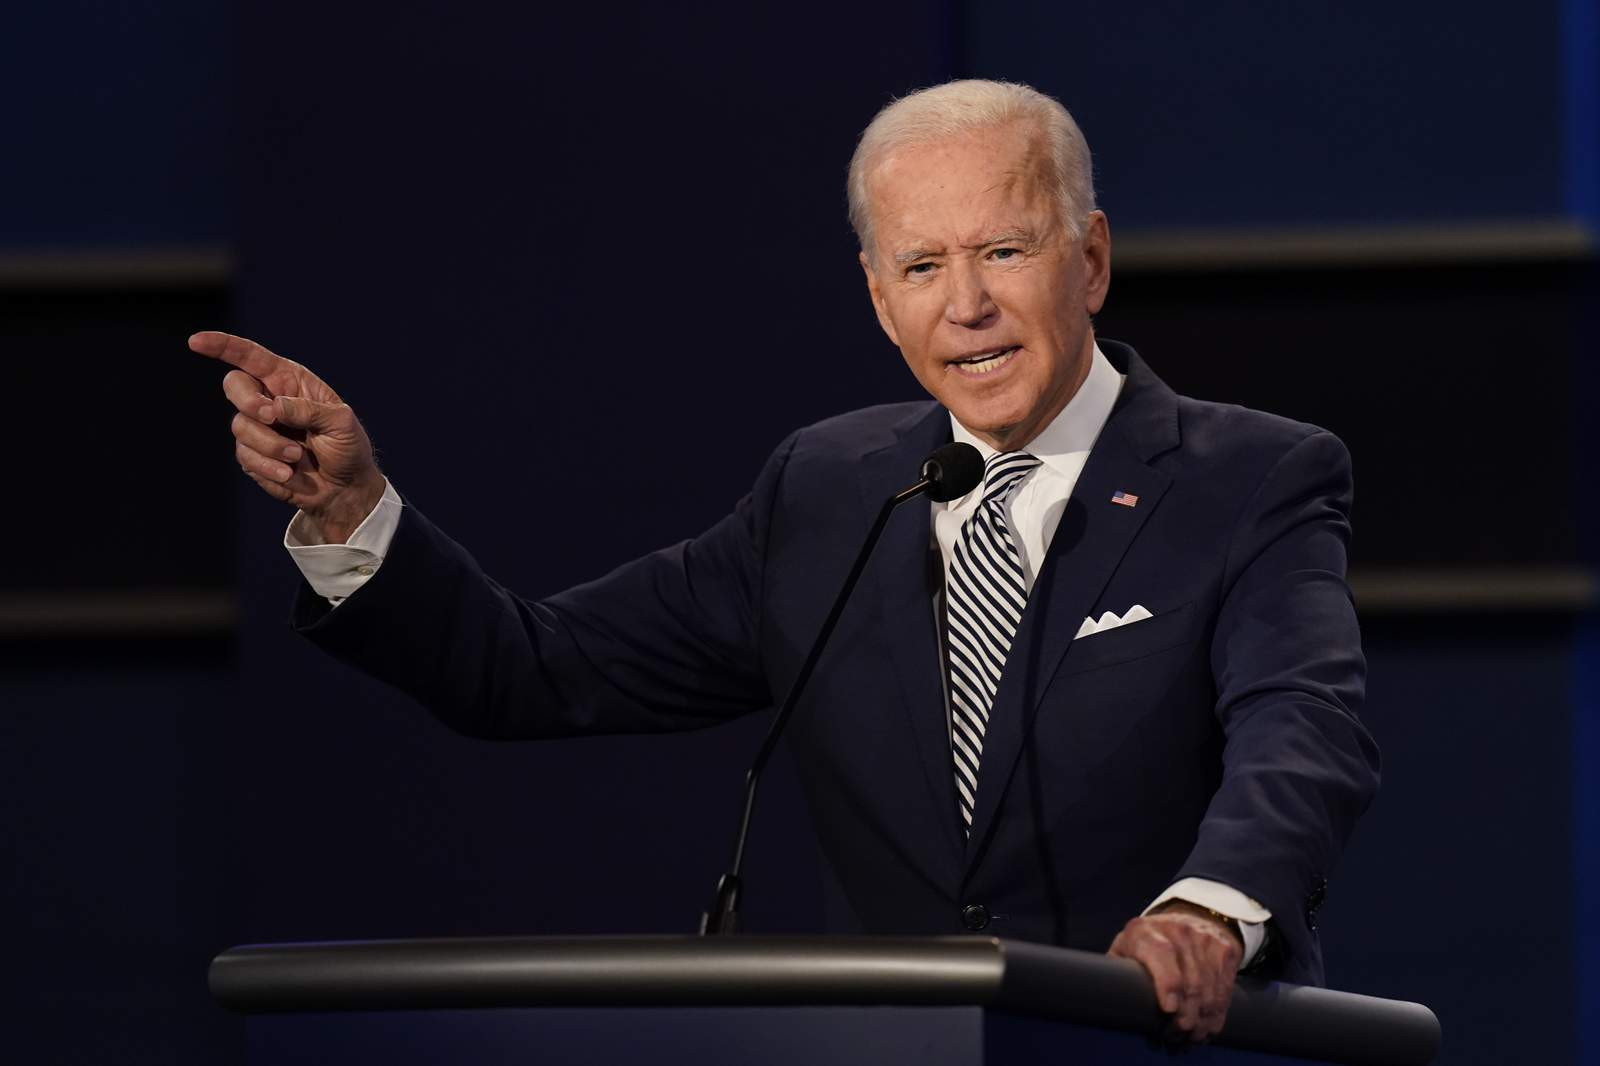 Joe Biden S Proper Use Of Inshallah In Debate Stuns Arab Americans